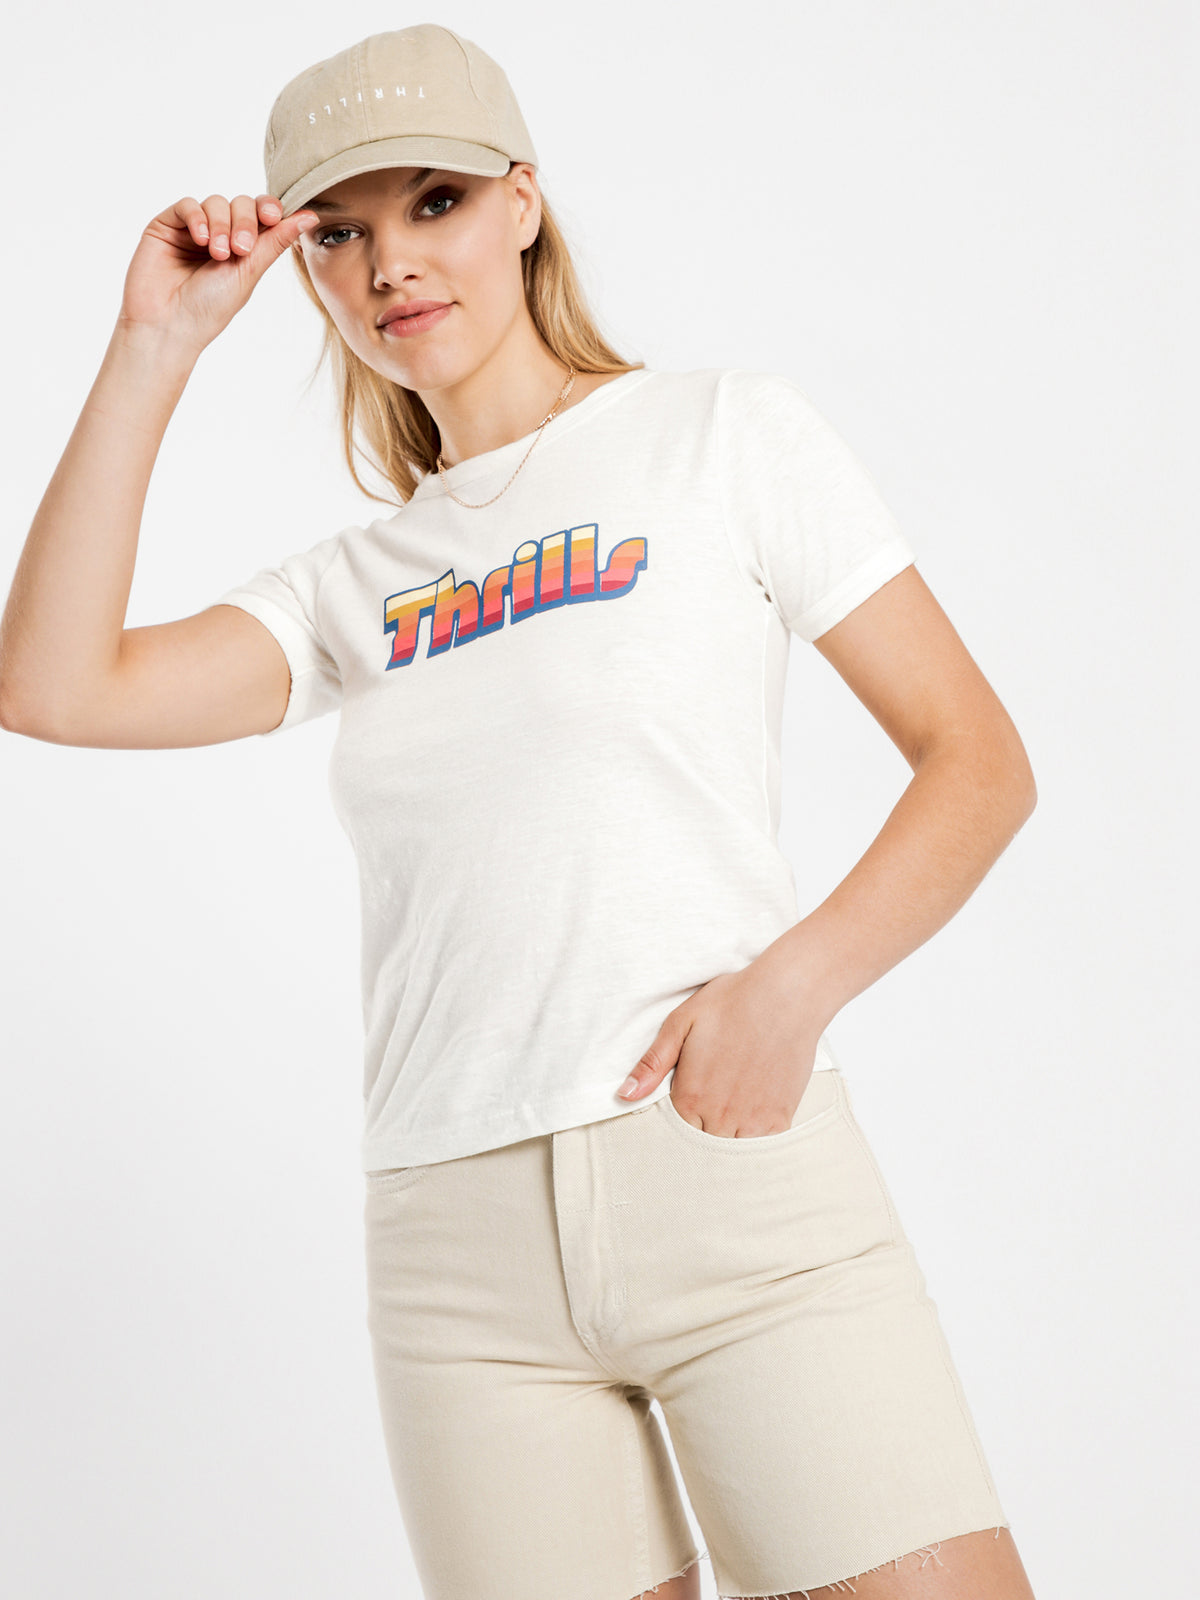 Thrills Retro T-Shirt in Dirty White